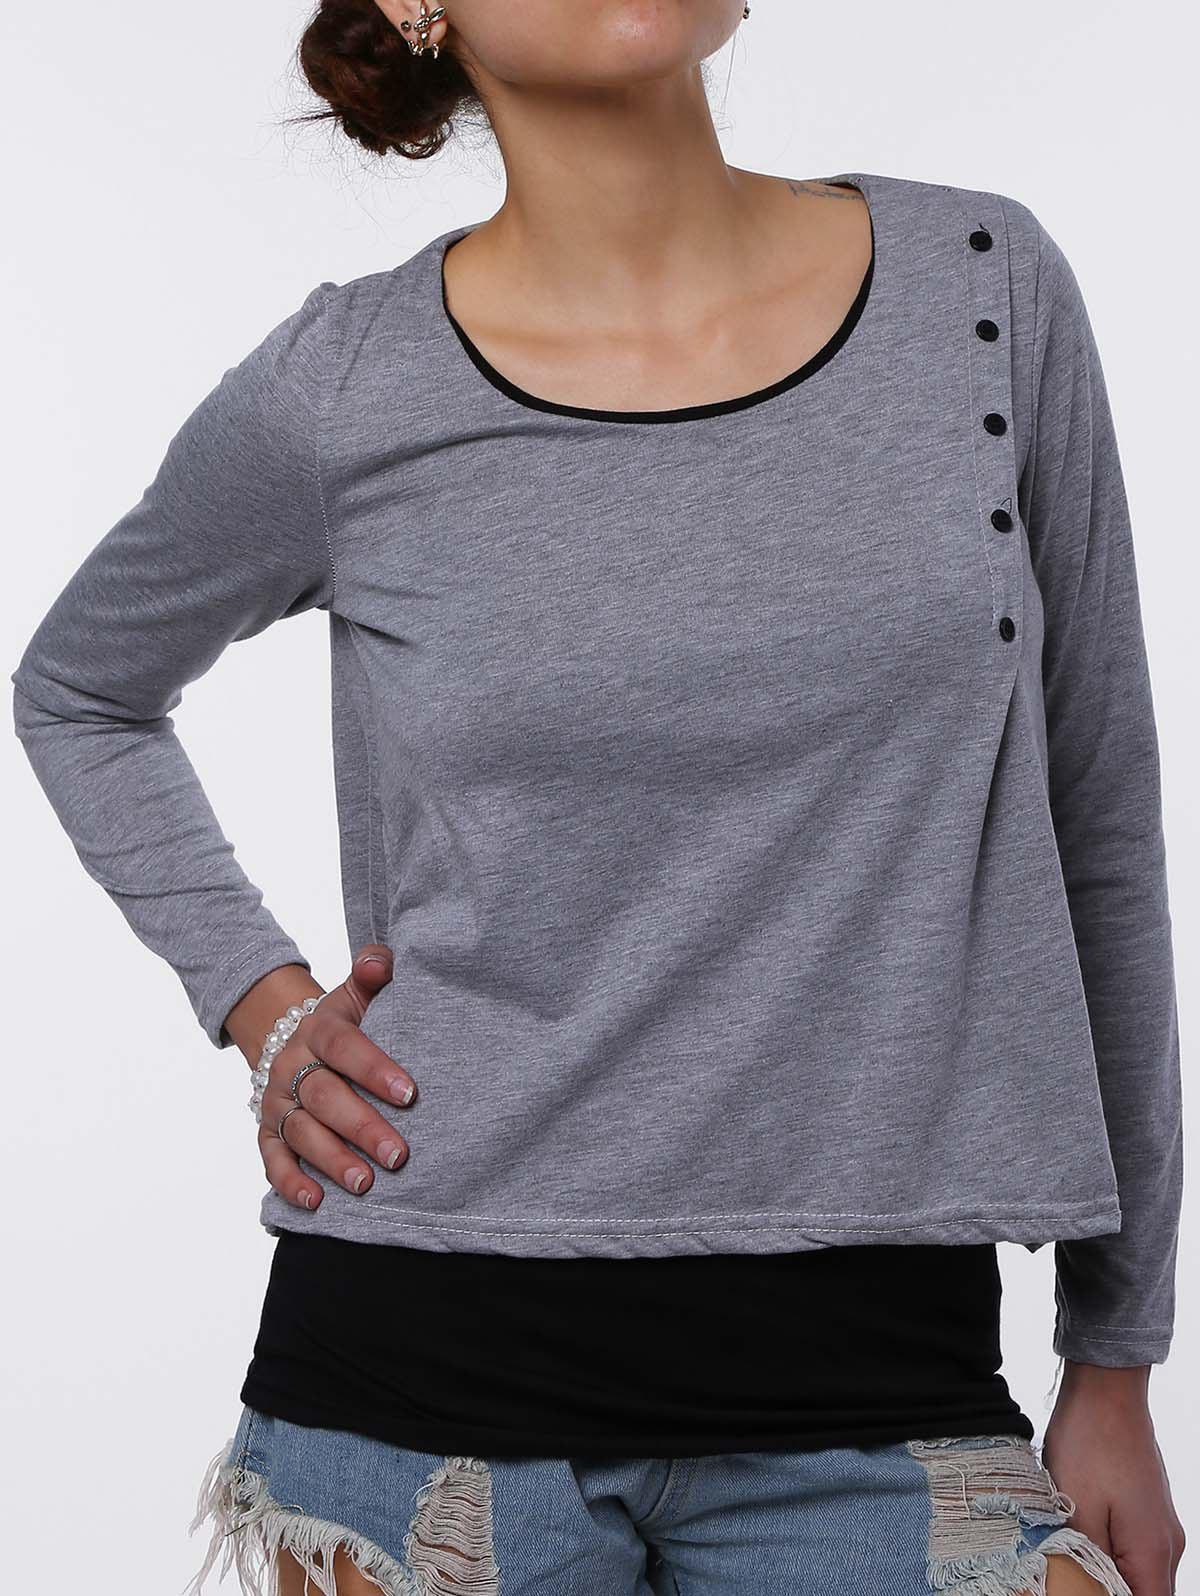 Shop Stylish Scoop Neck Faux Twinset Design Long Sleeve T-Shirt For Women